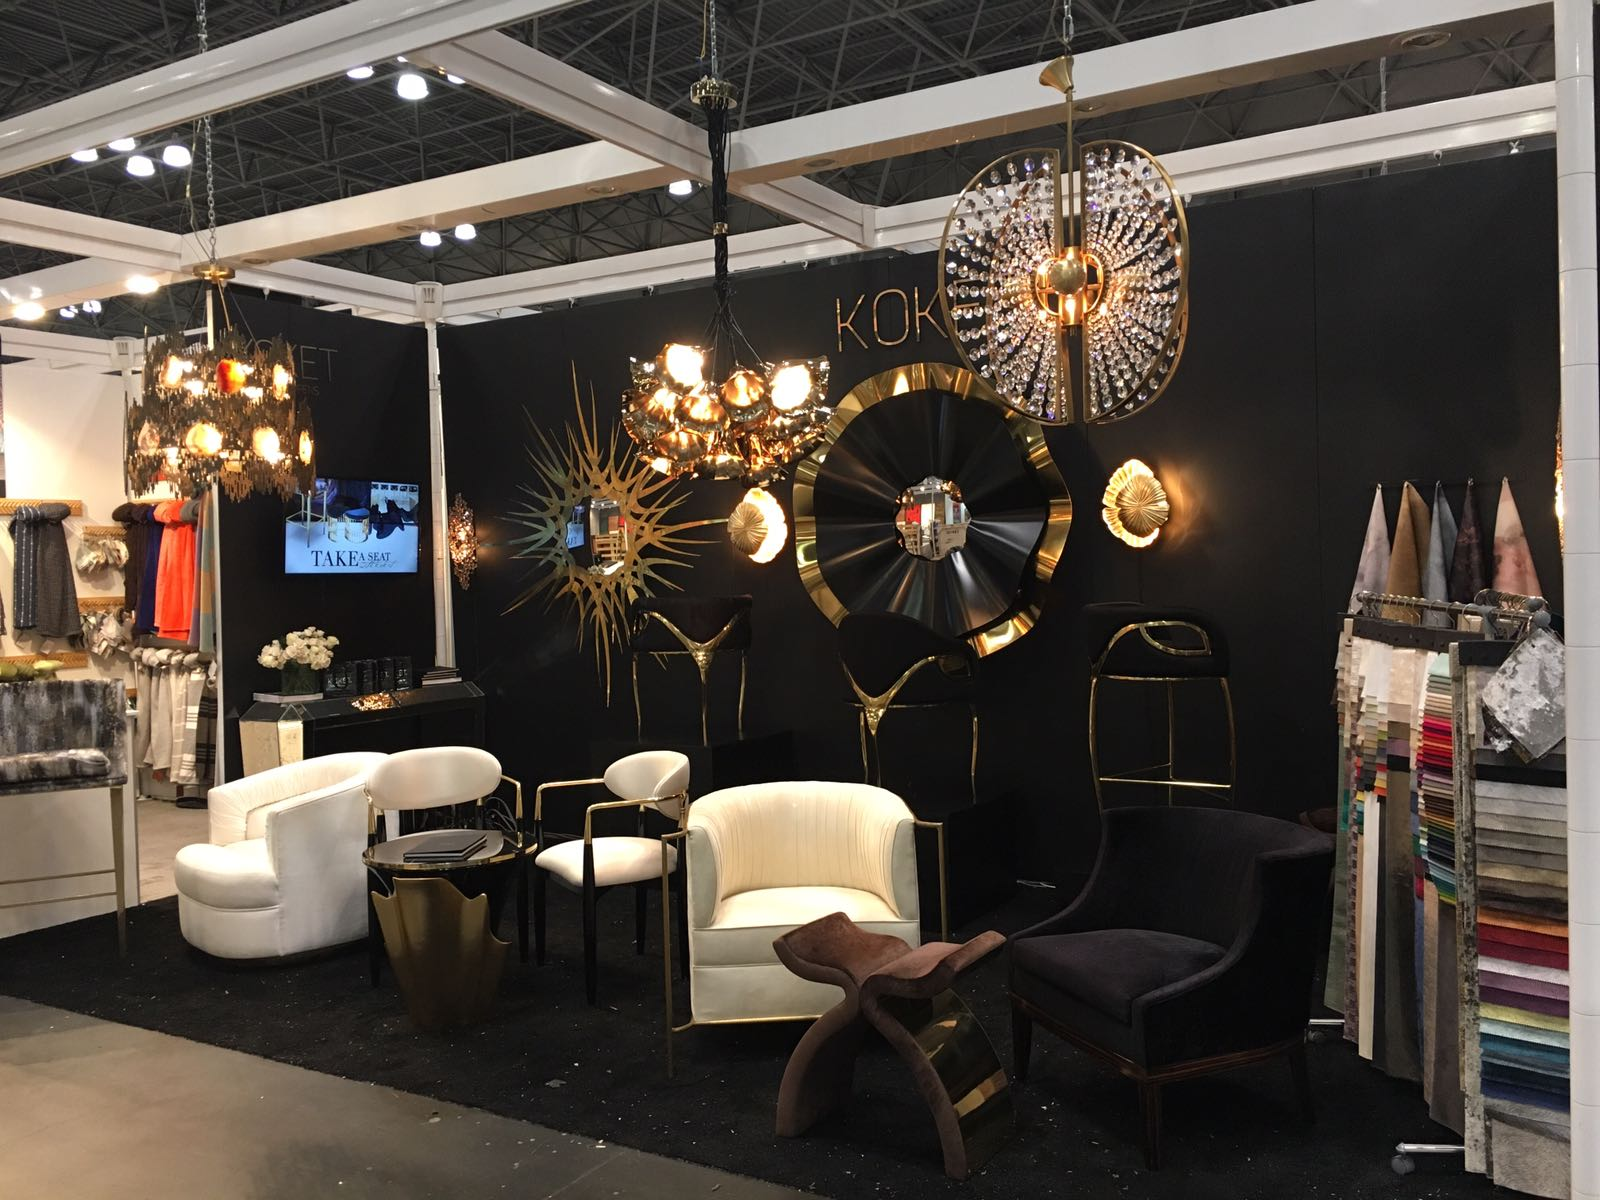 Highlights from BDNY 2016 bdny 2016 Highlights from BDNY 2016  996C5AFD67F1901124C65AE6489A980119172BA856E1EDC852 pimgpsh fullsize distr